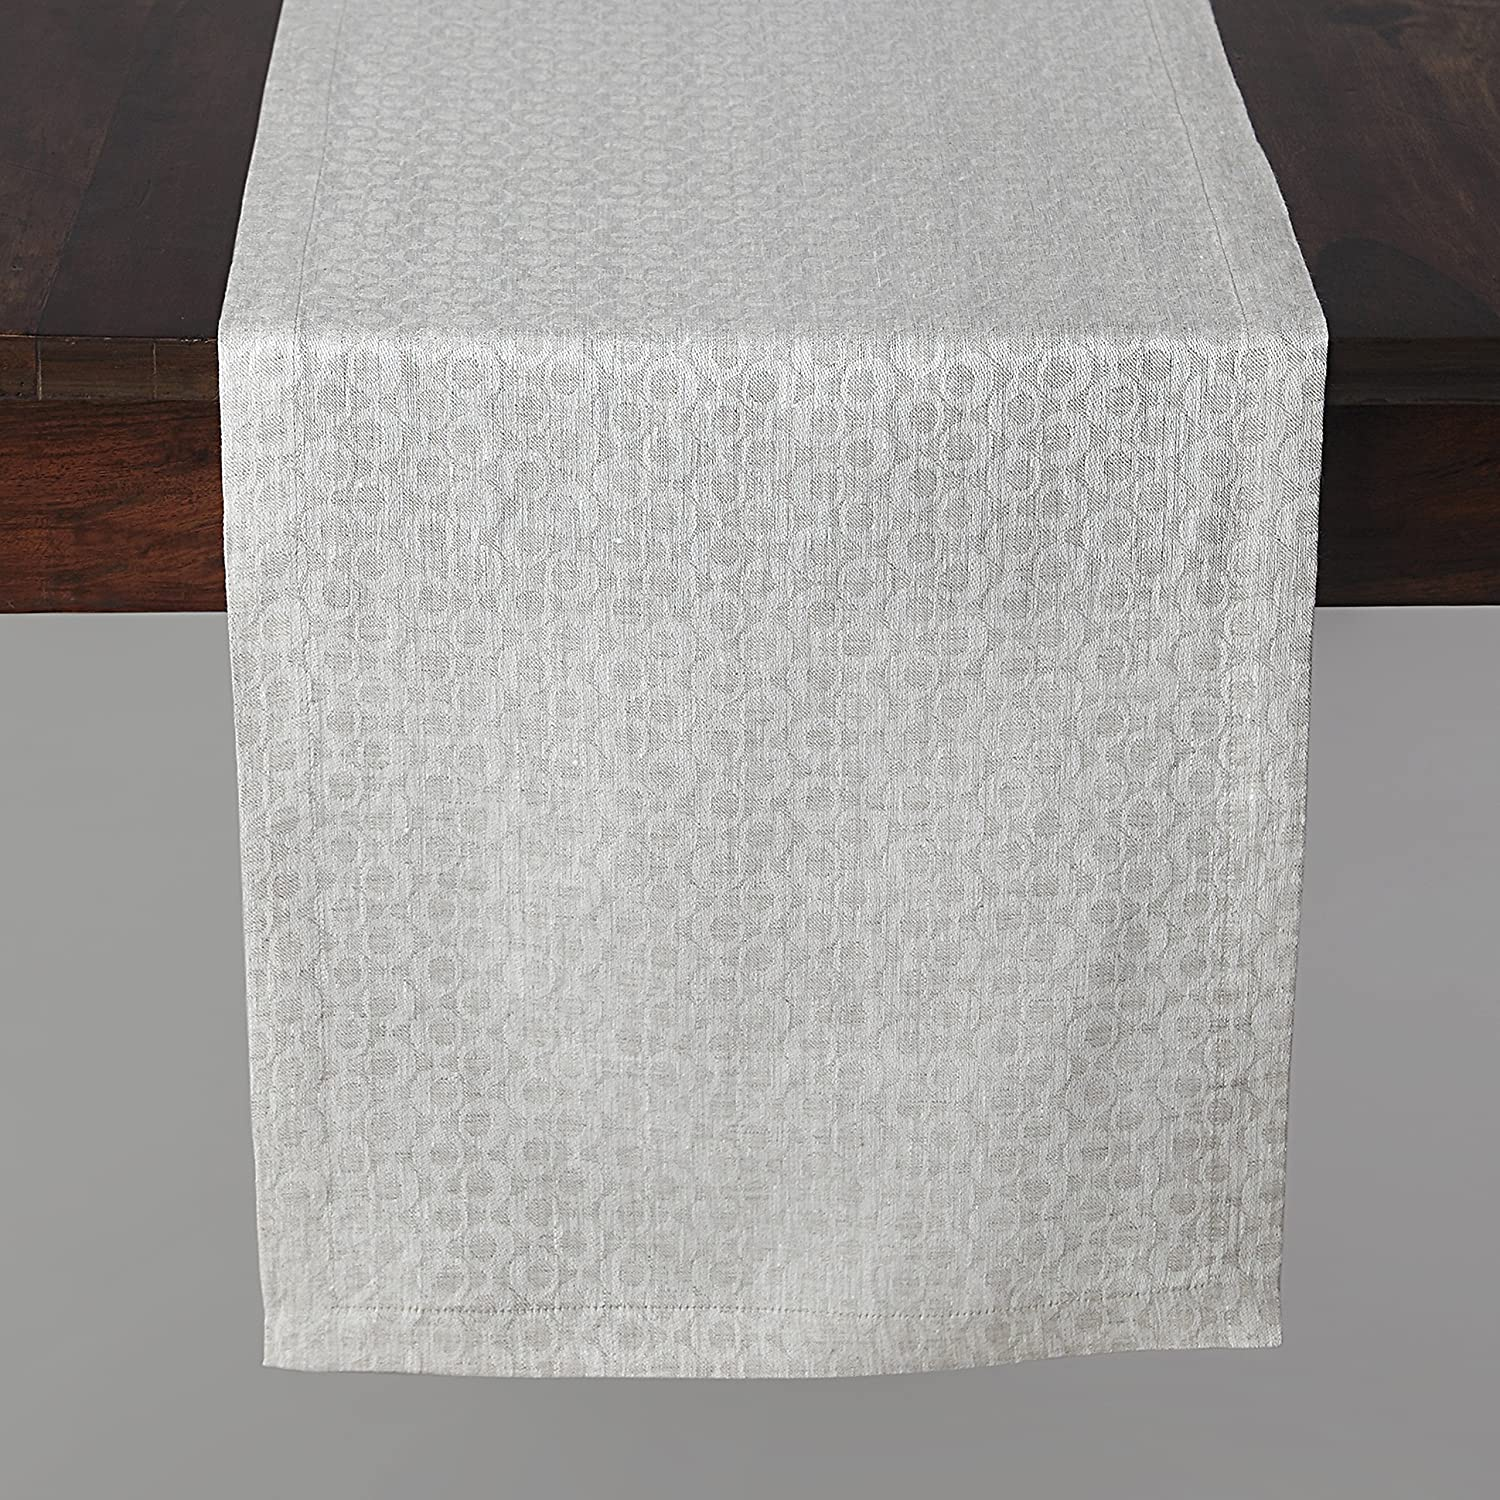 Handmade Natural Linen Jacquard Bruges Table Runner - ChristmasTablescapeDecor.com